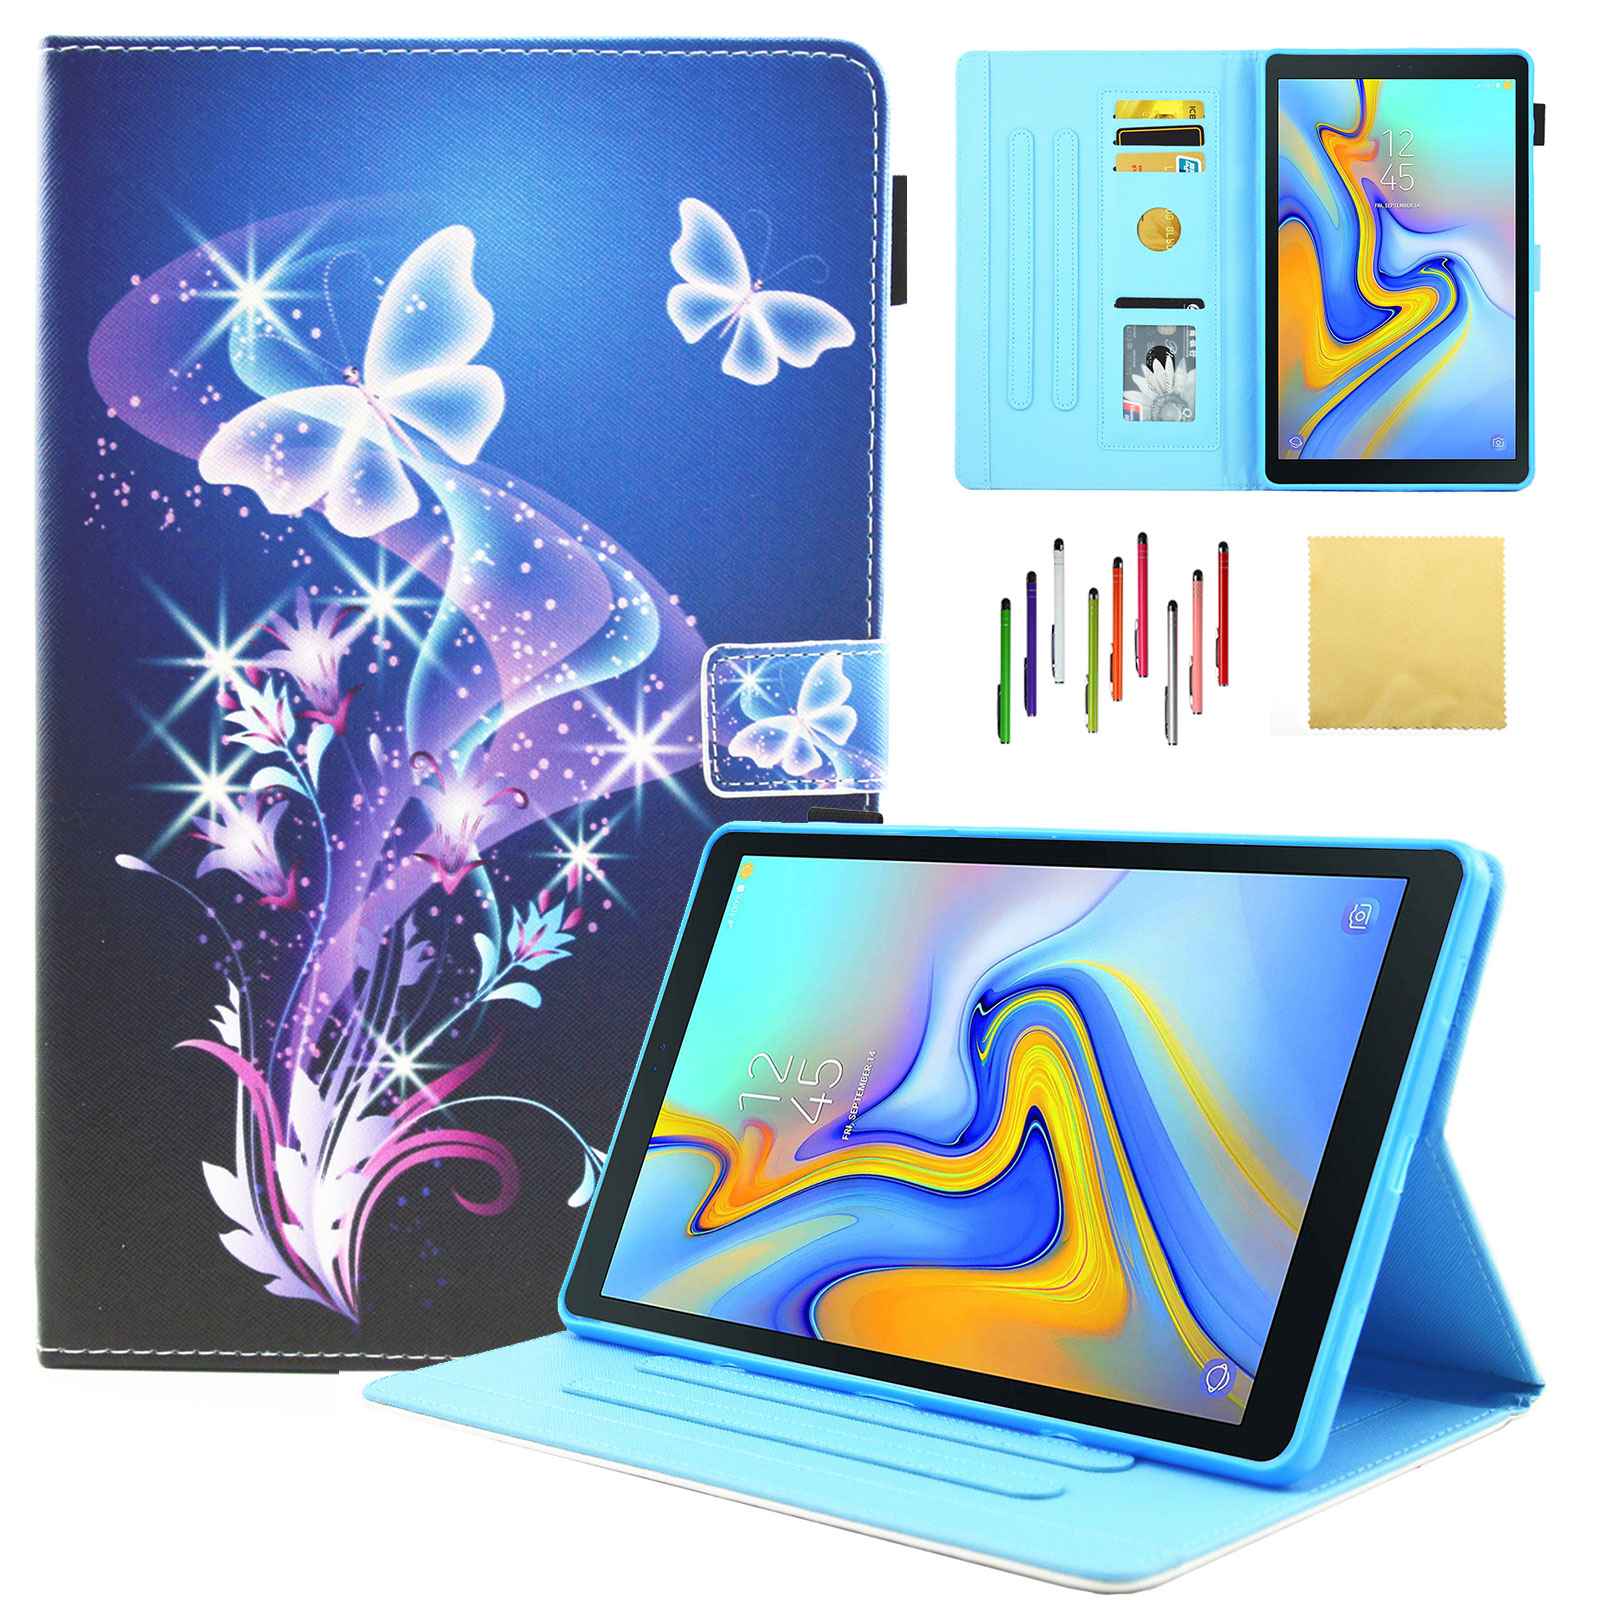 Galaxy Tab A 10.5 inch Case, Goodest Smart Folding Folio Protective Cover with Kickstand Pencil Card Holder for Samsung Galaxy Tab A 10.5 SM-T590/T595/T597 Tablet, Sparkle Butterfly